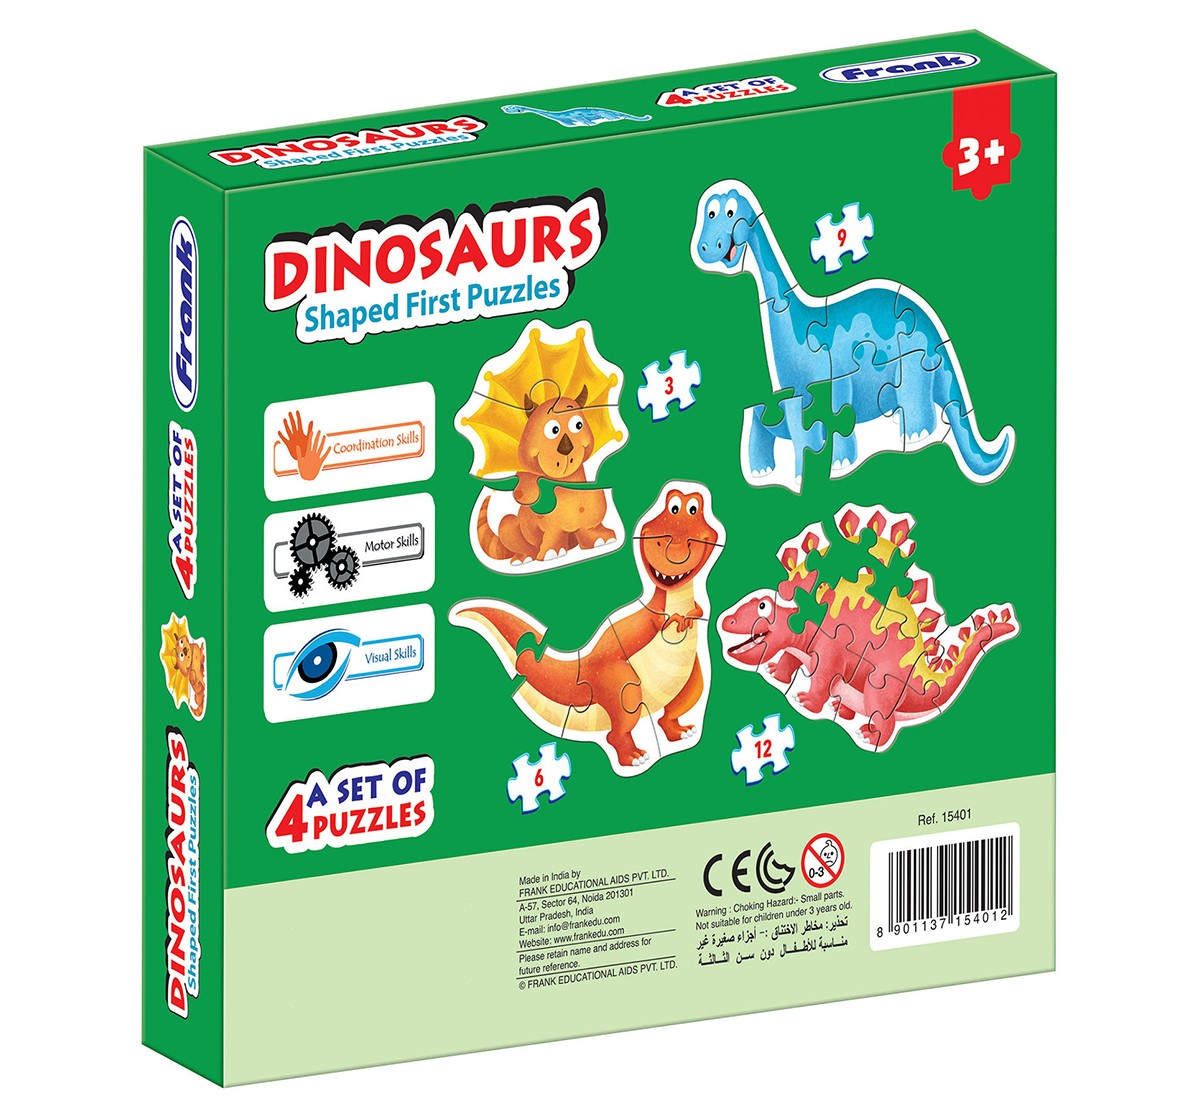 Frank Dinosaurs Shaped First Puzzle for Kids age 3Y+